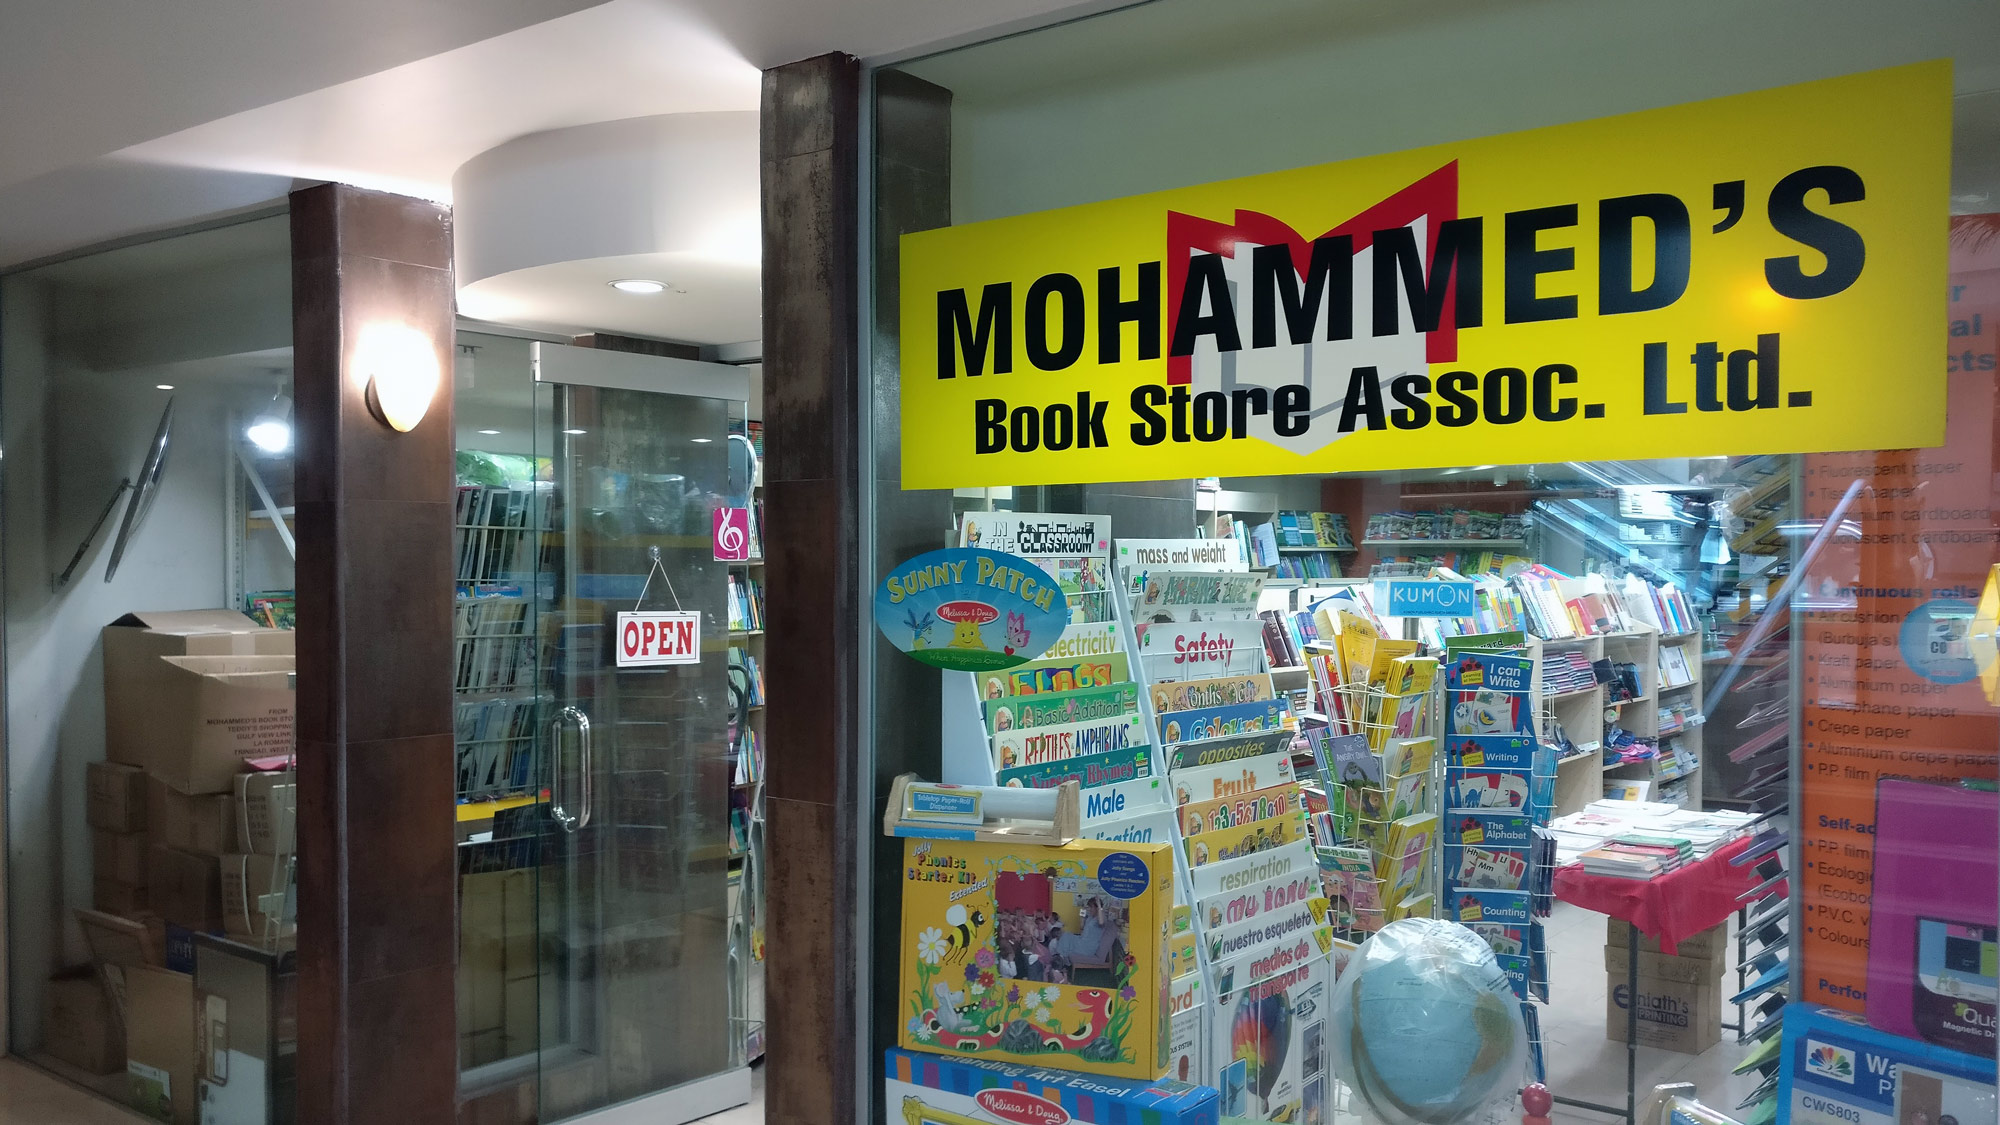 Mohammed's Book Store